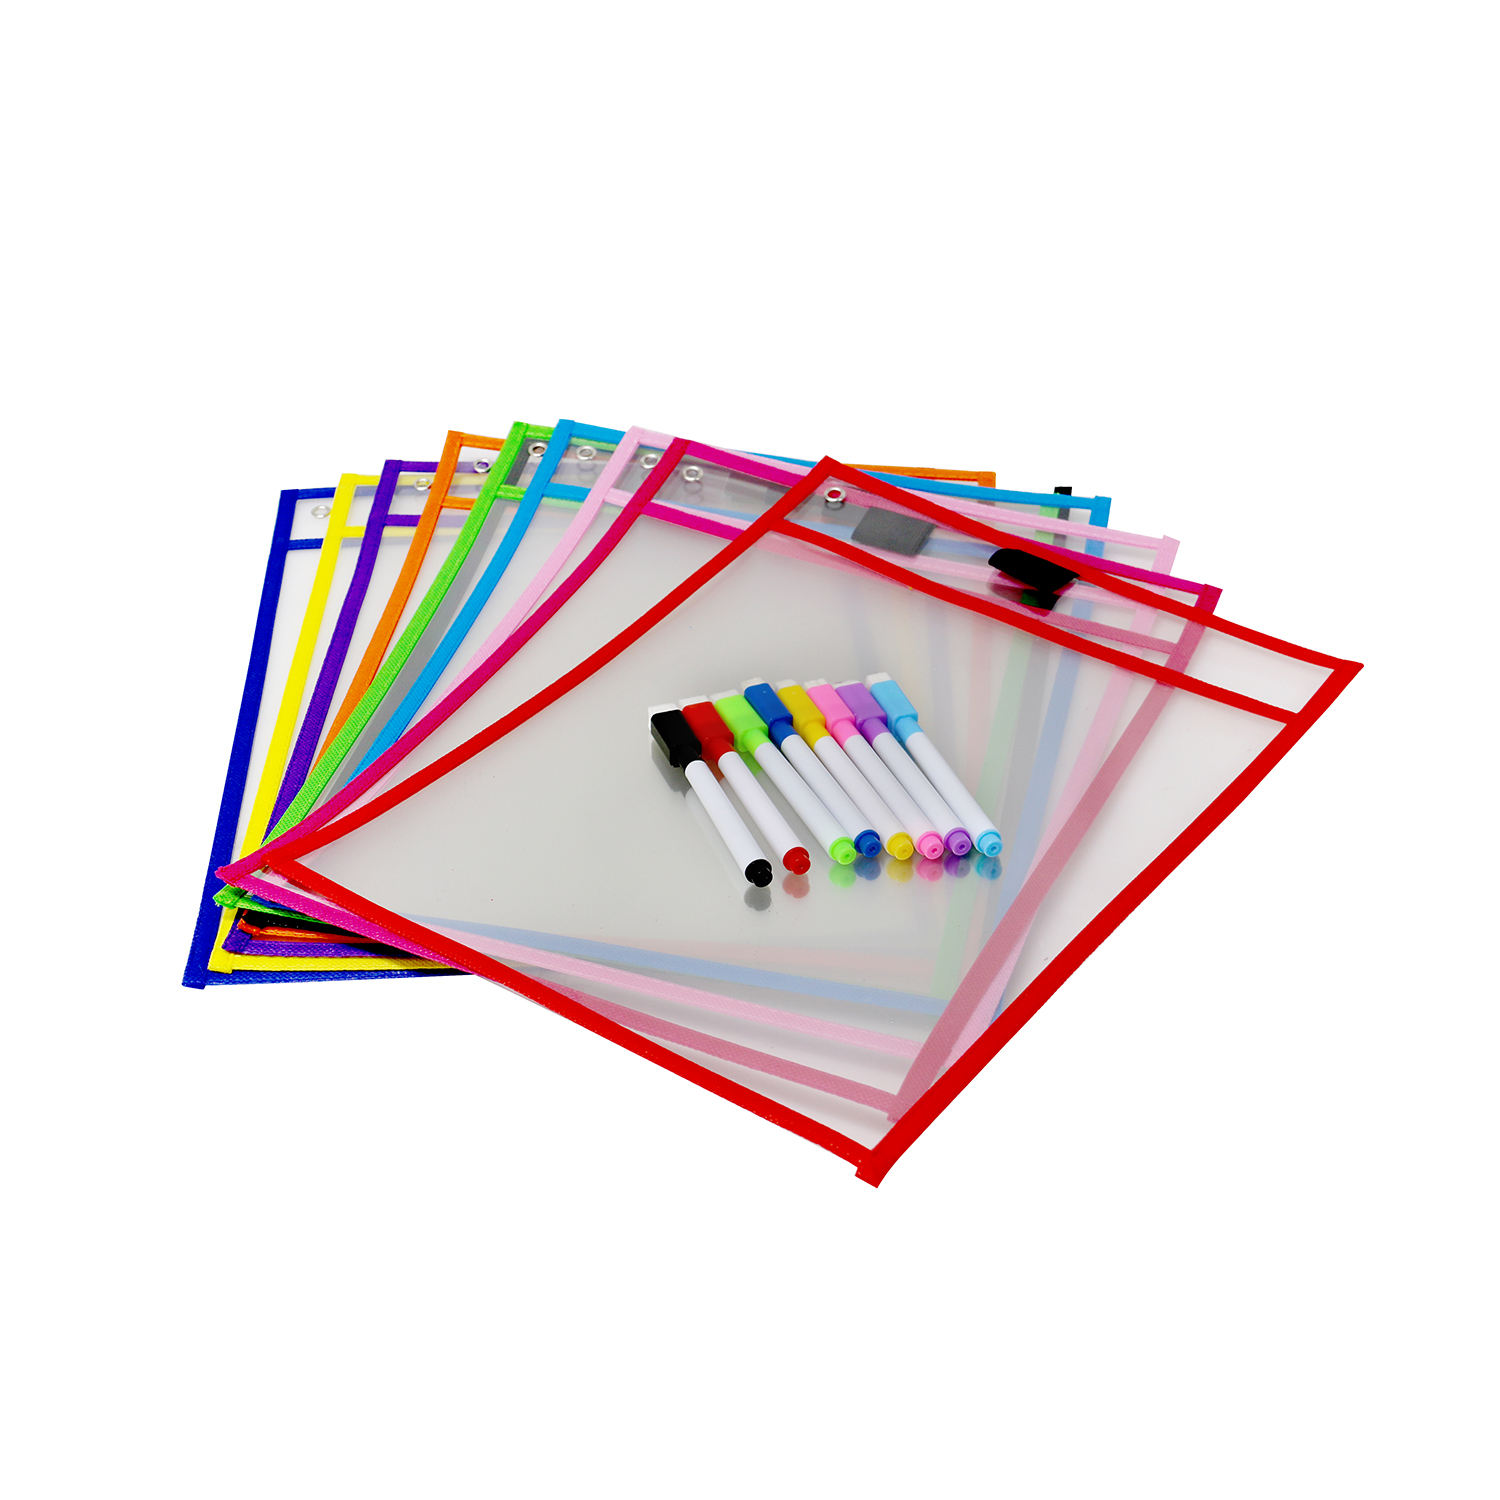 Assorted Colors PVC 6 Pack Reusable Sheet Protectors Dry Erase Pockets Sleeves for School or Work